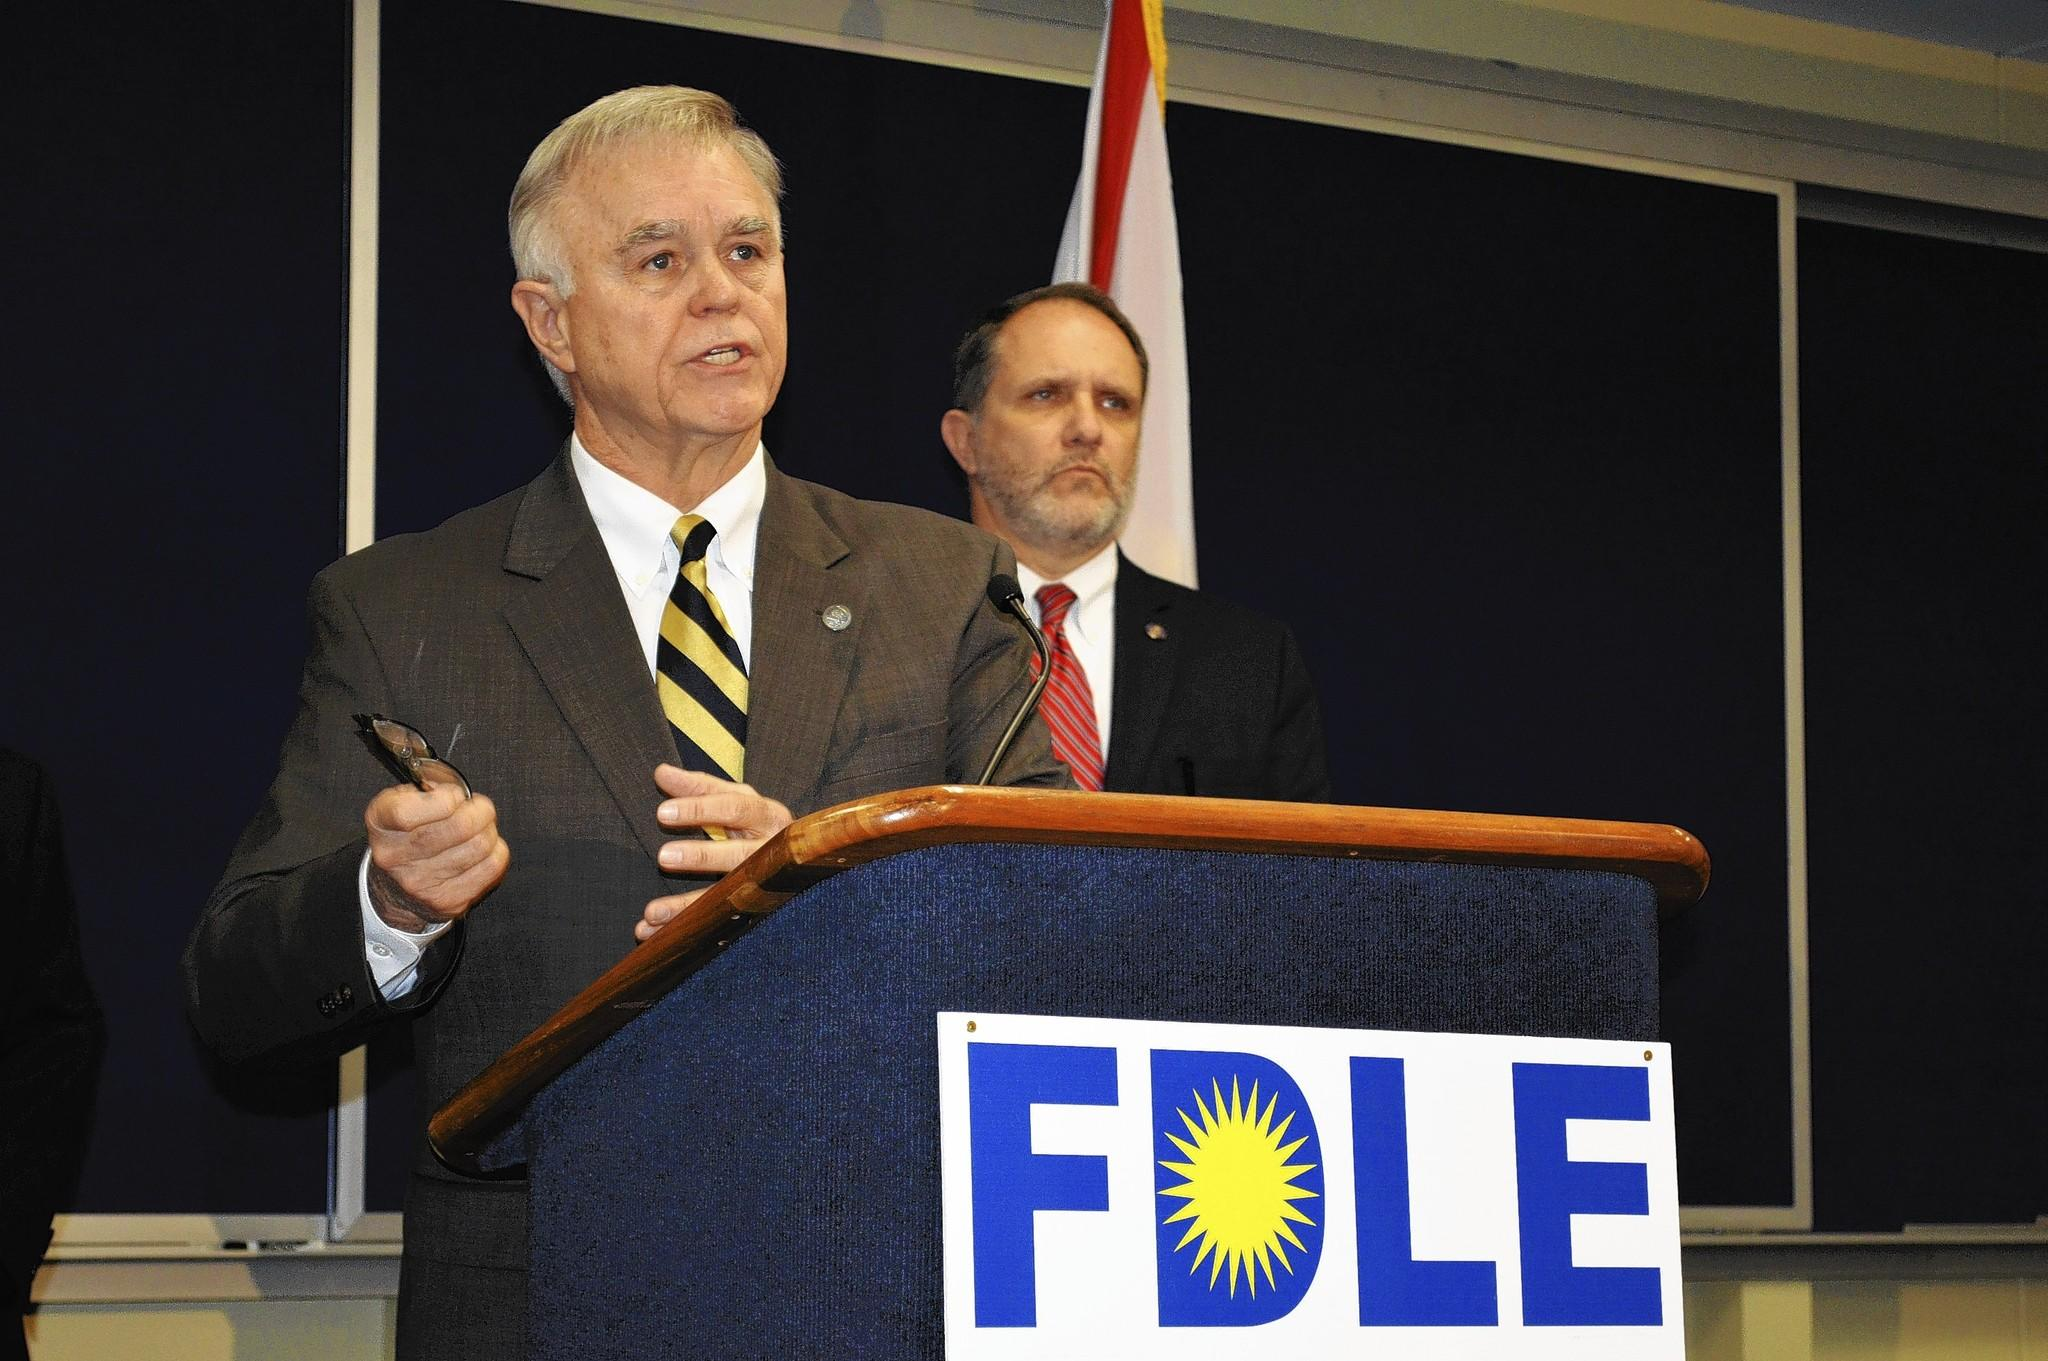 Florida Department of Law Enforcement Commissioner Gerald Bailey, with Assistant FDLE Commissioner Jim Madden (R), announces an investigation into evidence tampering that could affect hundreds of drug cases handled by a chemist in the Pensacola FDLE laboratory.